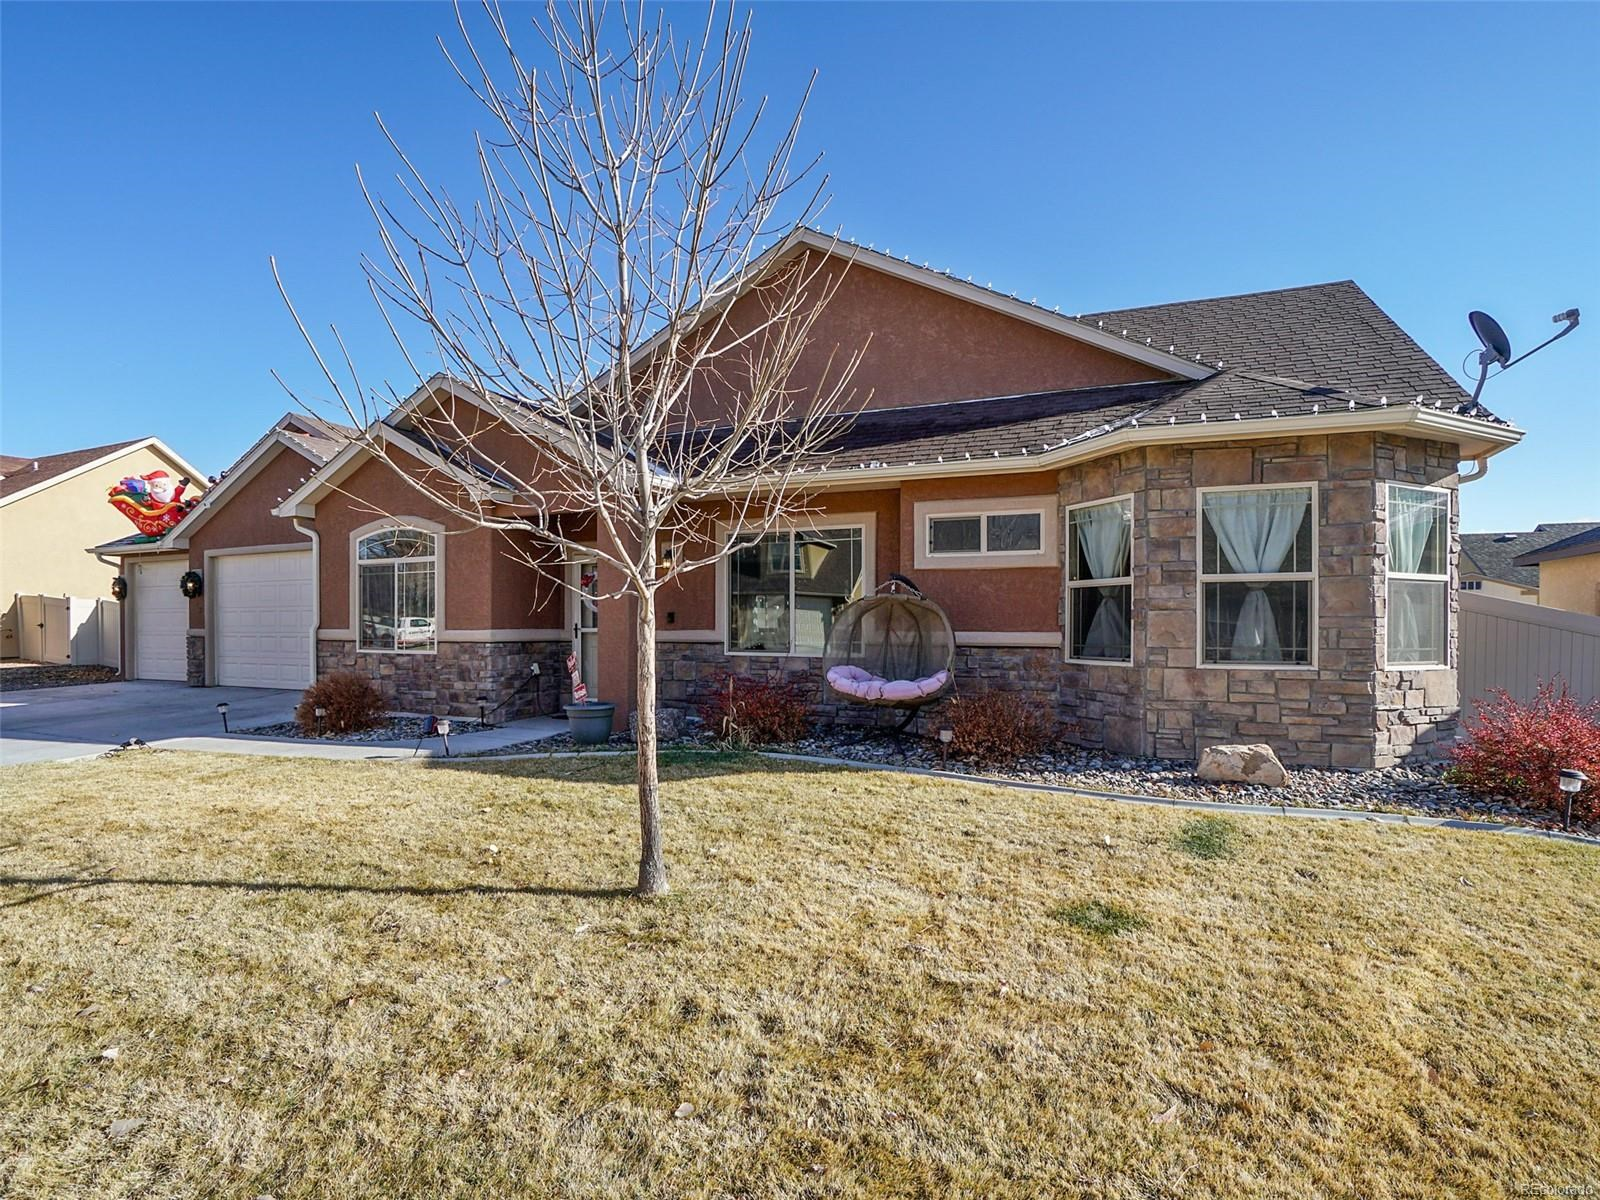 MLS# 9647581 - 1 - 636 Allegheny Drive, Grand Junction, CO 81504